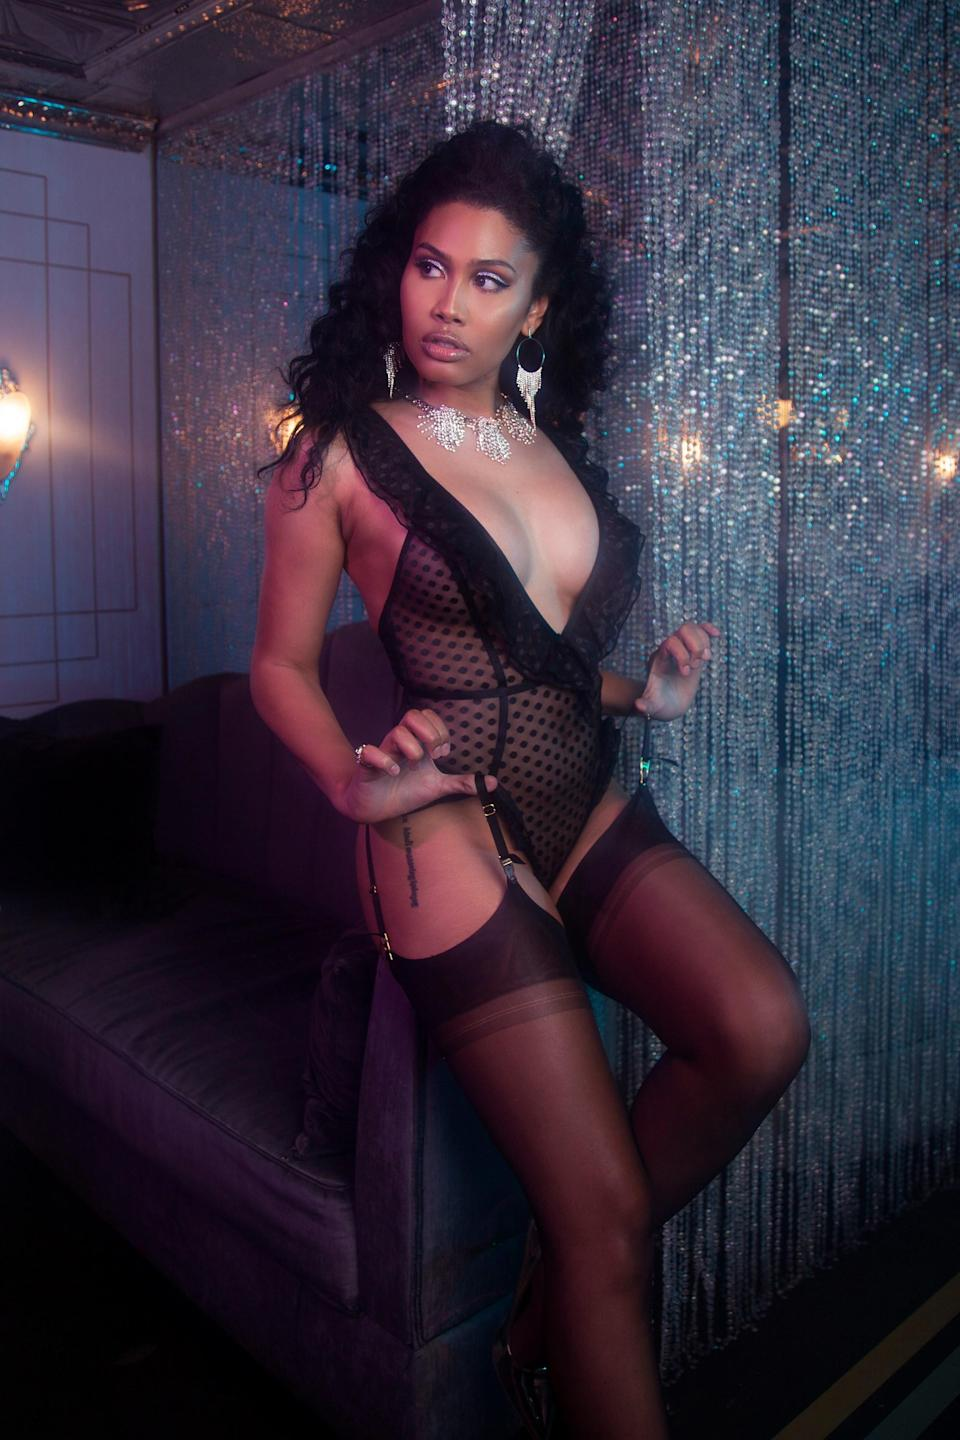 Leyna Bloom campaigned to be the first trans model to appear on a certain televised runway. Now she's the face of Playful Promises' new lingerie campaign.